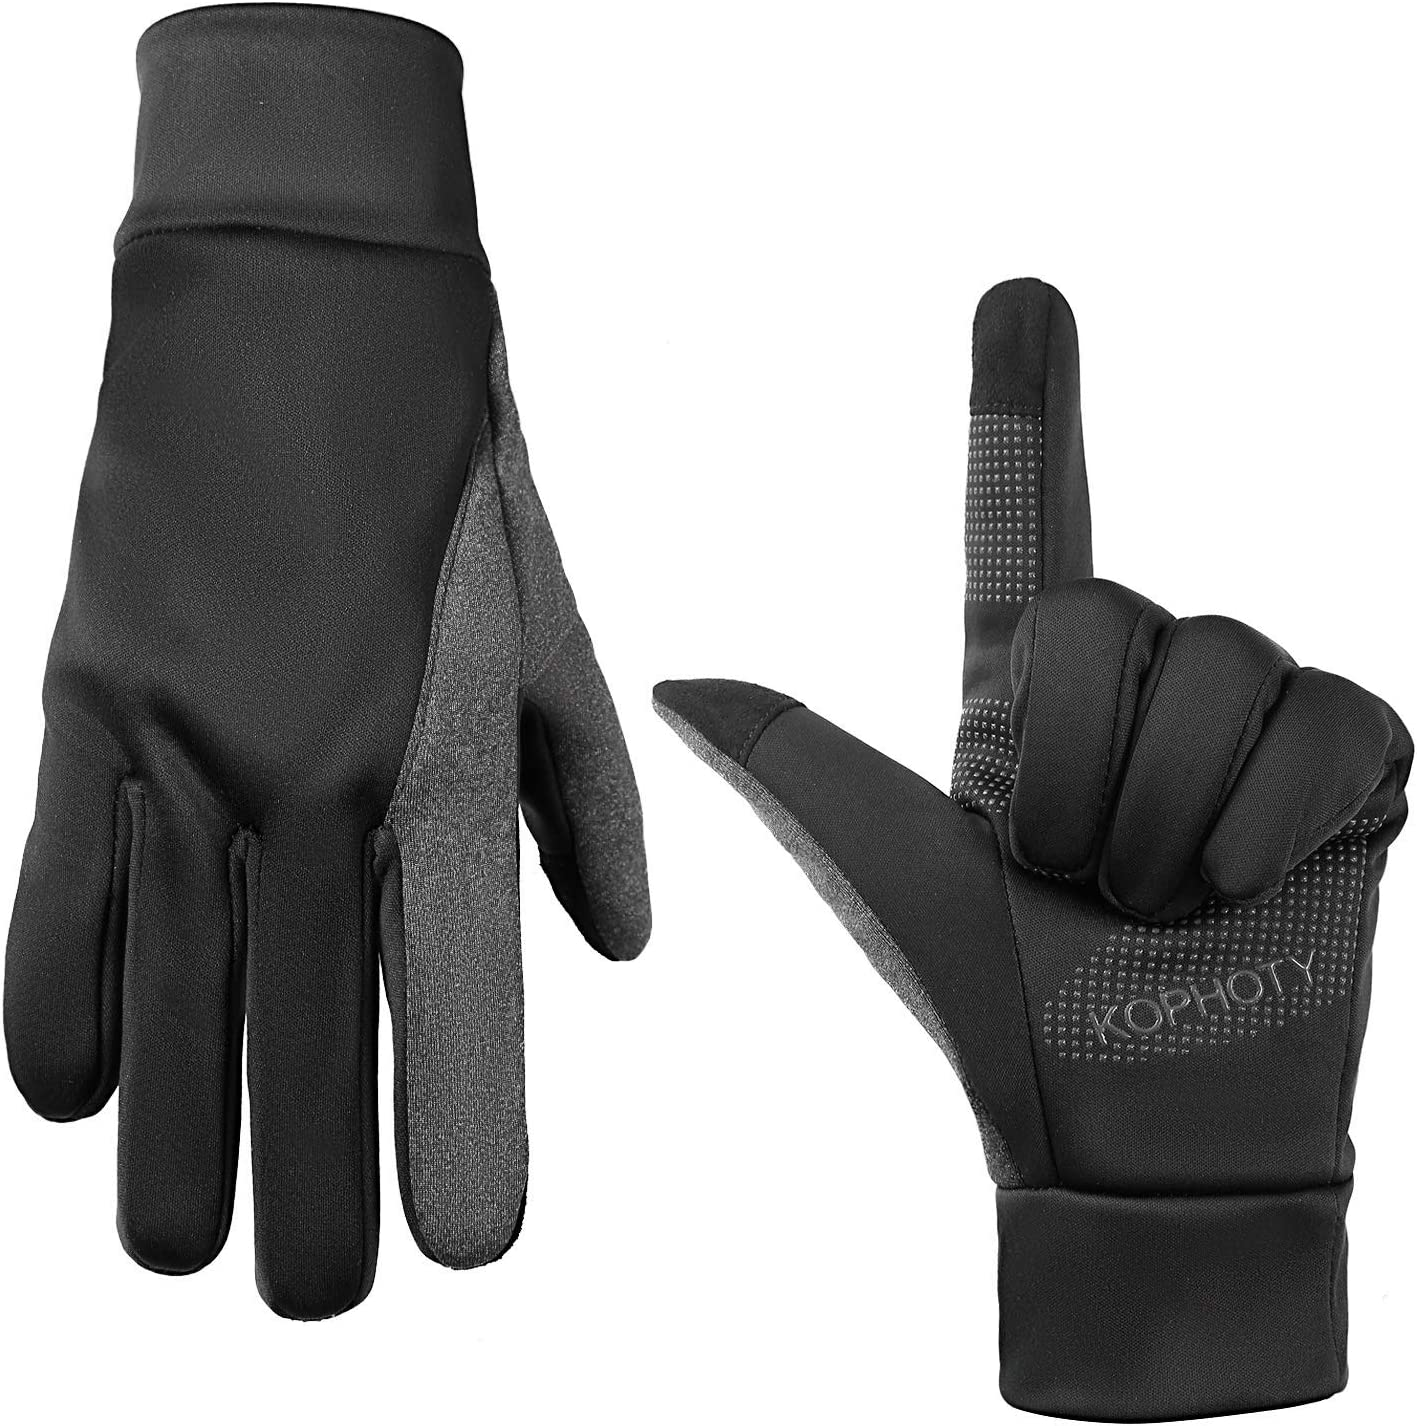 KOPHOTY Winter Gloves for Men Women Warm Touch Screen Gloves Water Resistant Windproof Thermal for Driving Running Cycling Texting